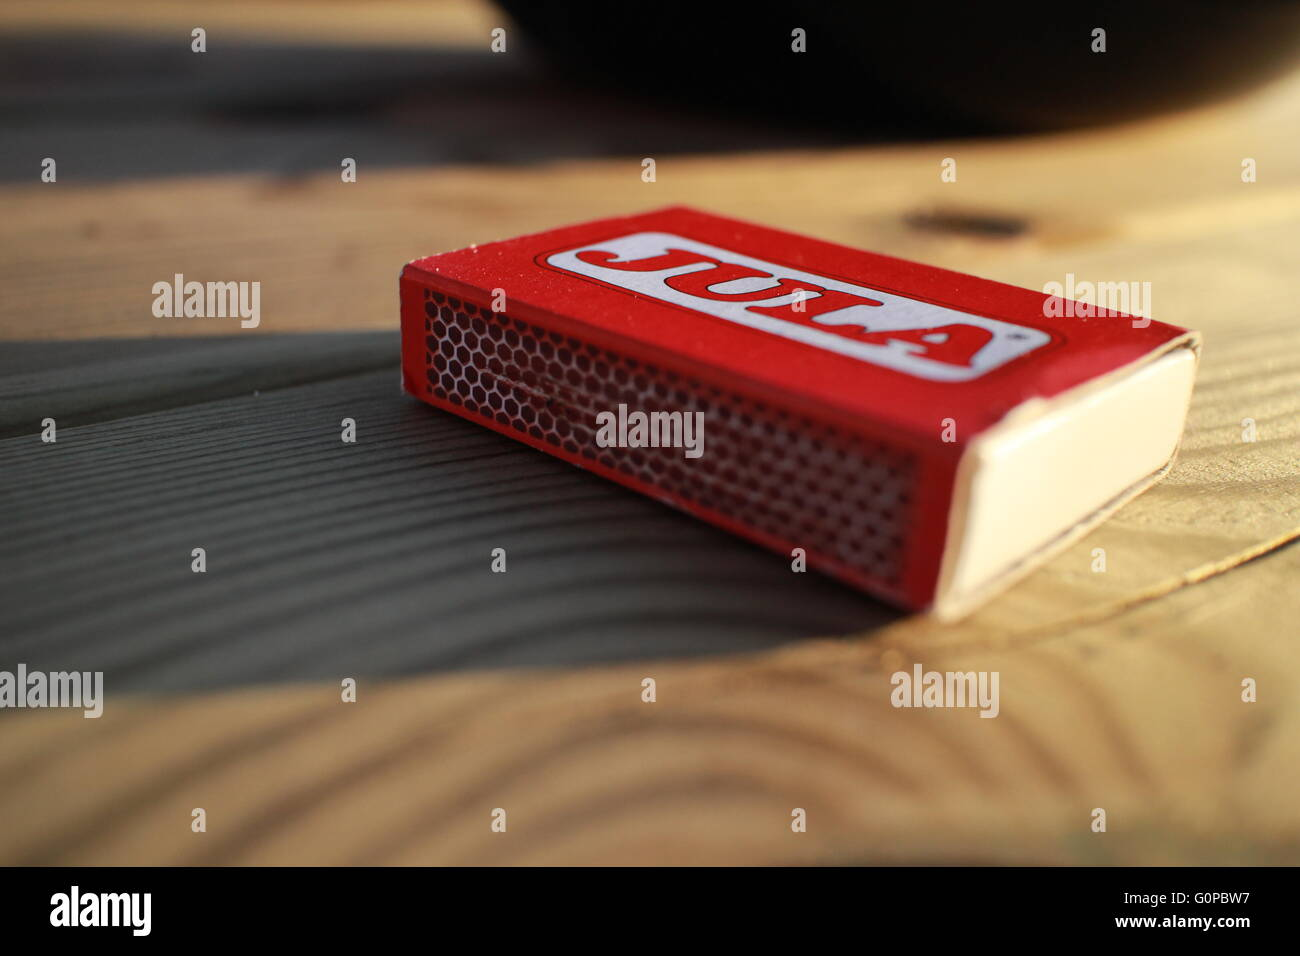 A small red box of 'Jula' matches, resting on a table in the evening sunlight. - Stock Image